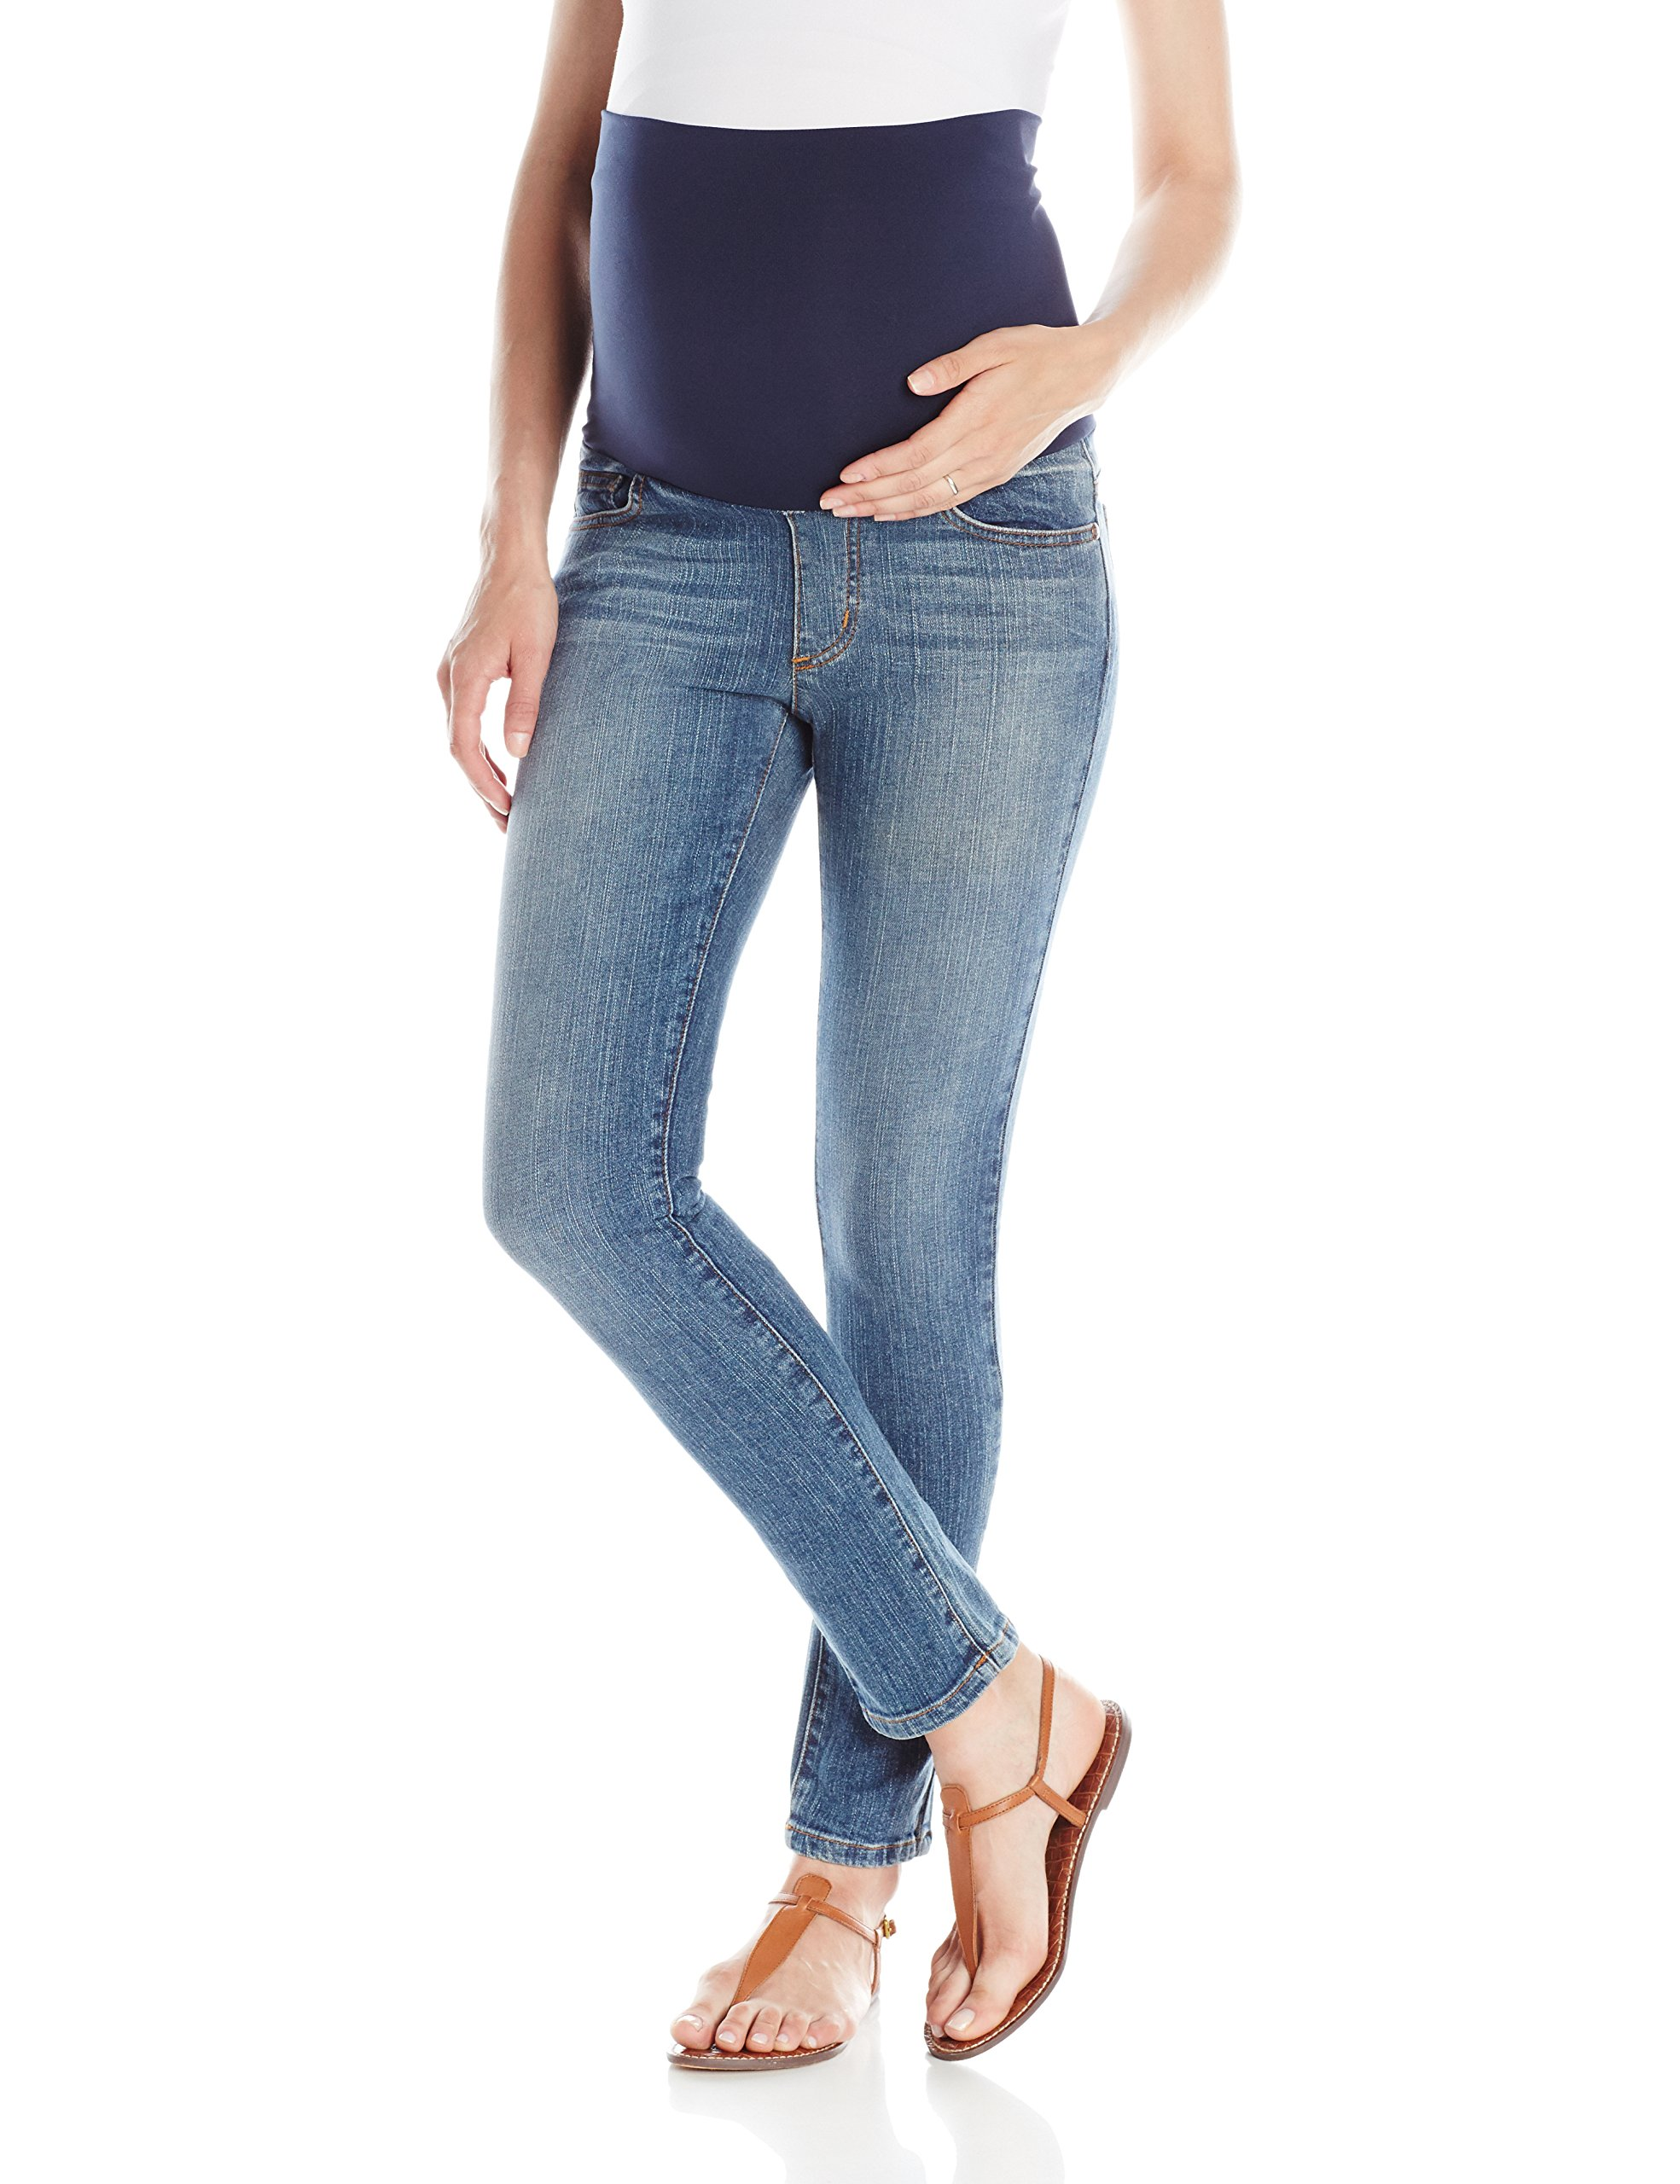 Maternal America Women's Maternity Belly Support Skinny Ankle Maternity Jeans, Classic Wash, M